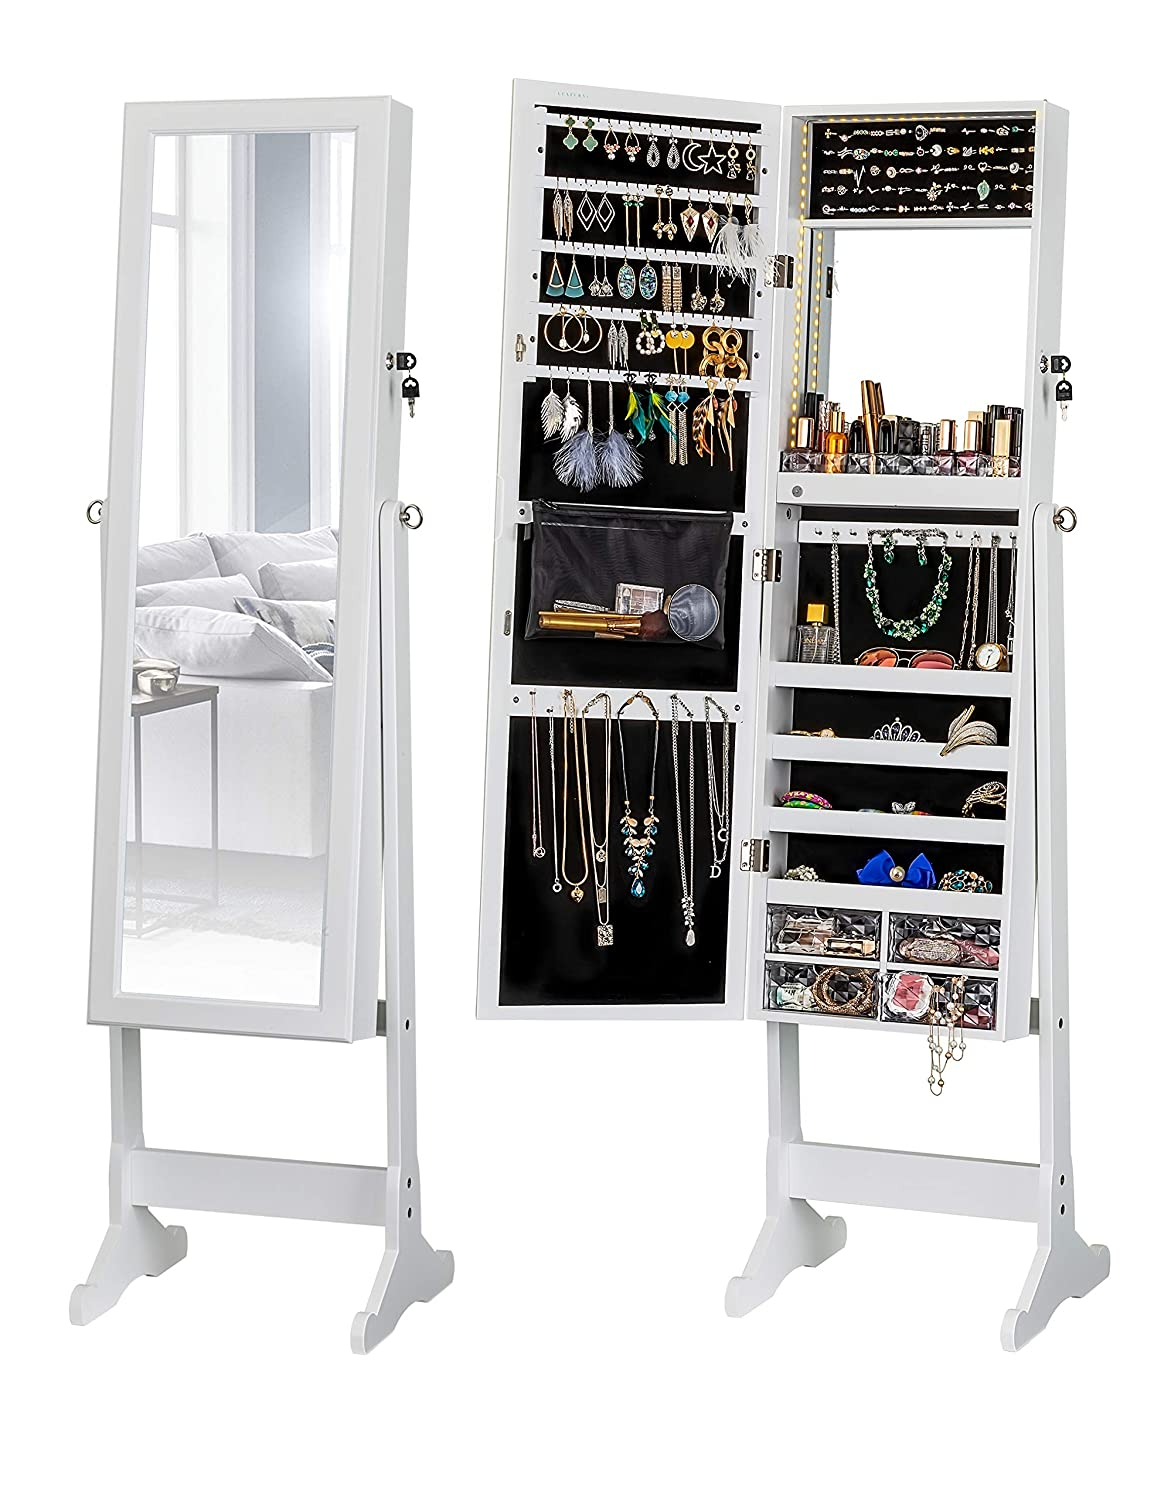 LUXFURNI LED Light Jewelry Cabinet Standing Mirror Makeup Lockable Armoire, Large Storage Organizer w/Drawers (White, L)